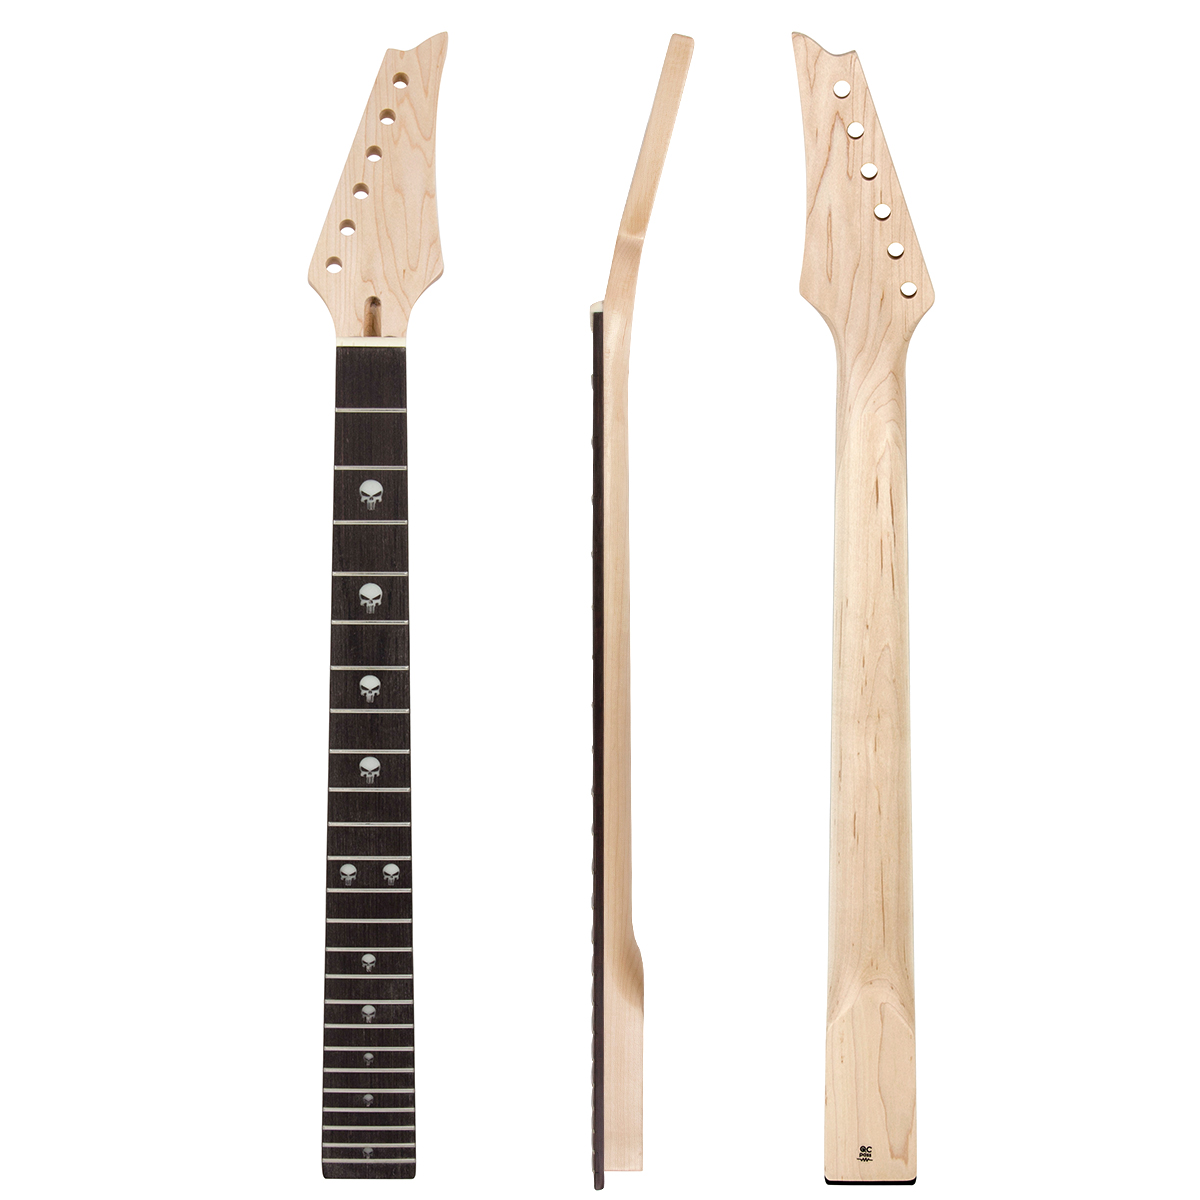 Kmise Electric Guitar Neck Canada Maple 24 Large...